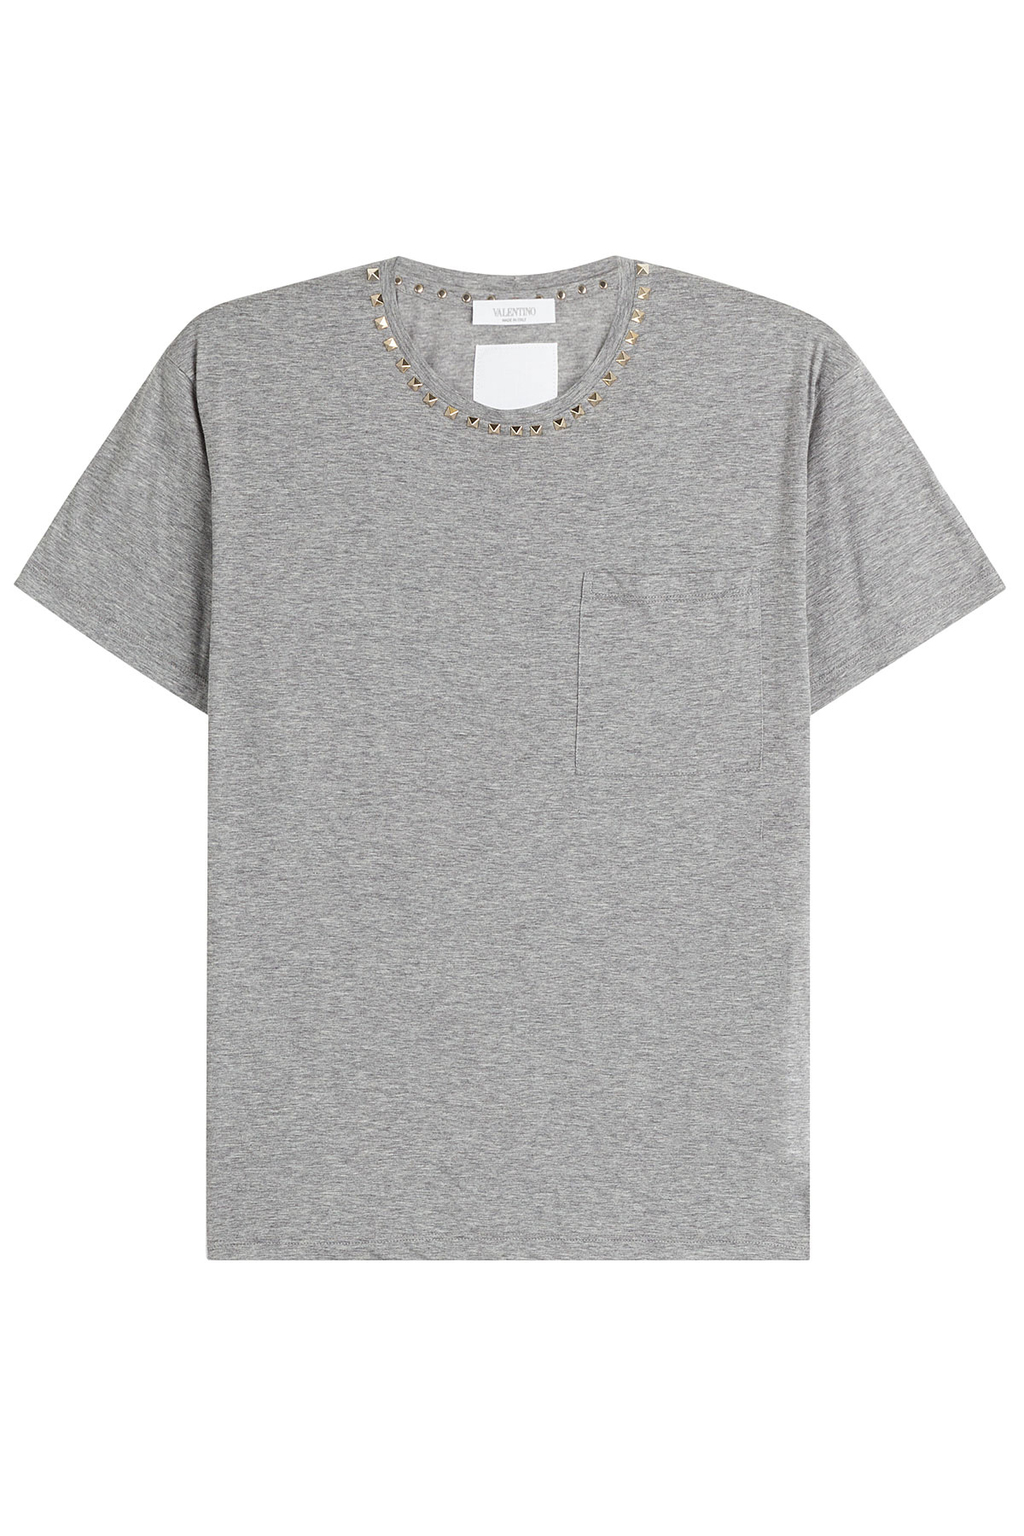 Rockstud Untitled Cotton T Shirt Grey - style: t-shirt; predominant colour: mid grey; occasions: casual; length: standard; fibres: cotton - stretch; fit: straight cut; neckline: crew; sleeve length: short sleeve; sleeve style: standard; pattern type: fabric; texture group: jersey - stretchy/drapey; embellishment: studs; pattern: marl; season: s/s 2016